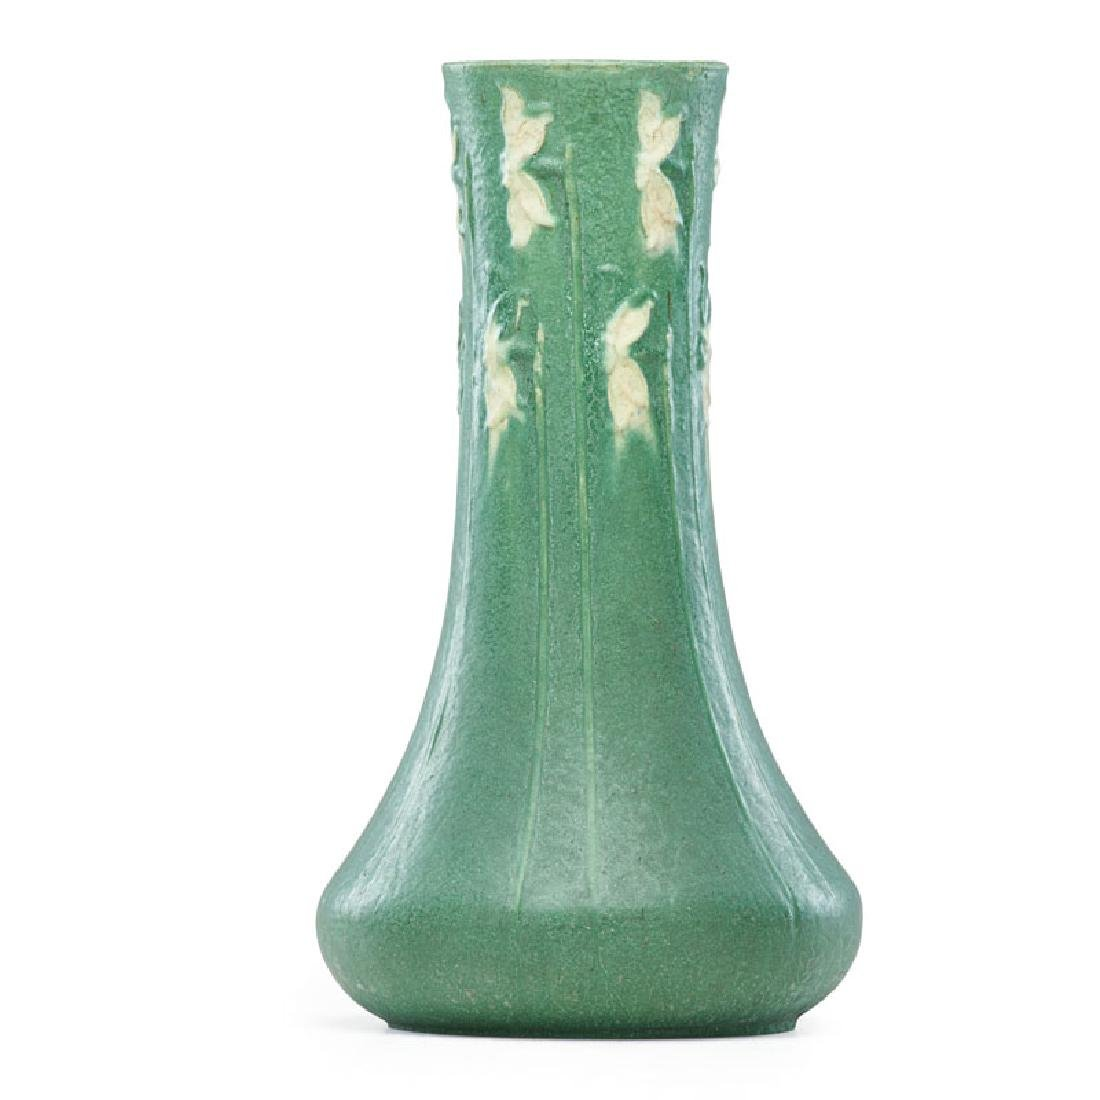 RUTH ERICKSON; GRUEBY Rare large two-color vase